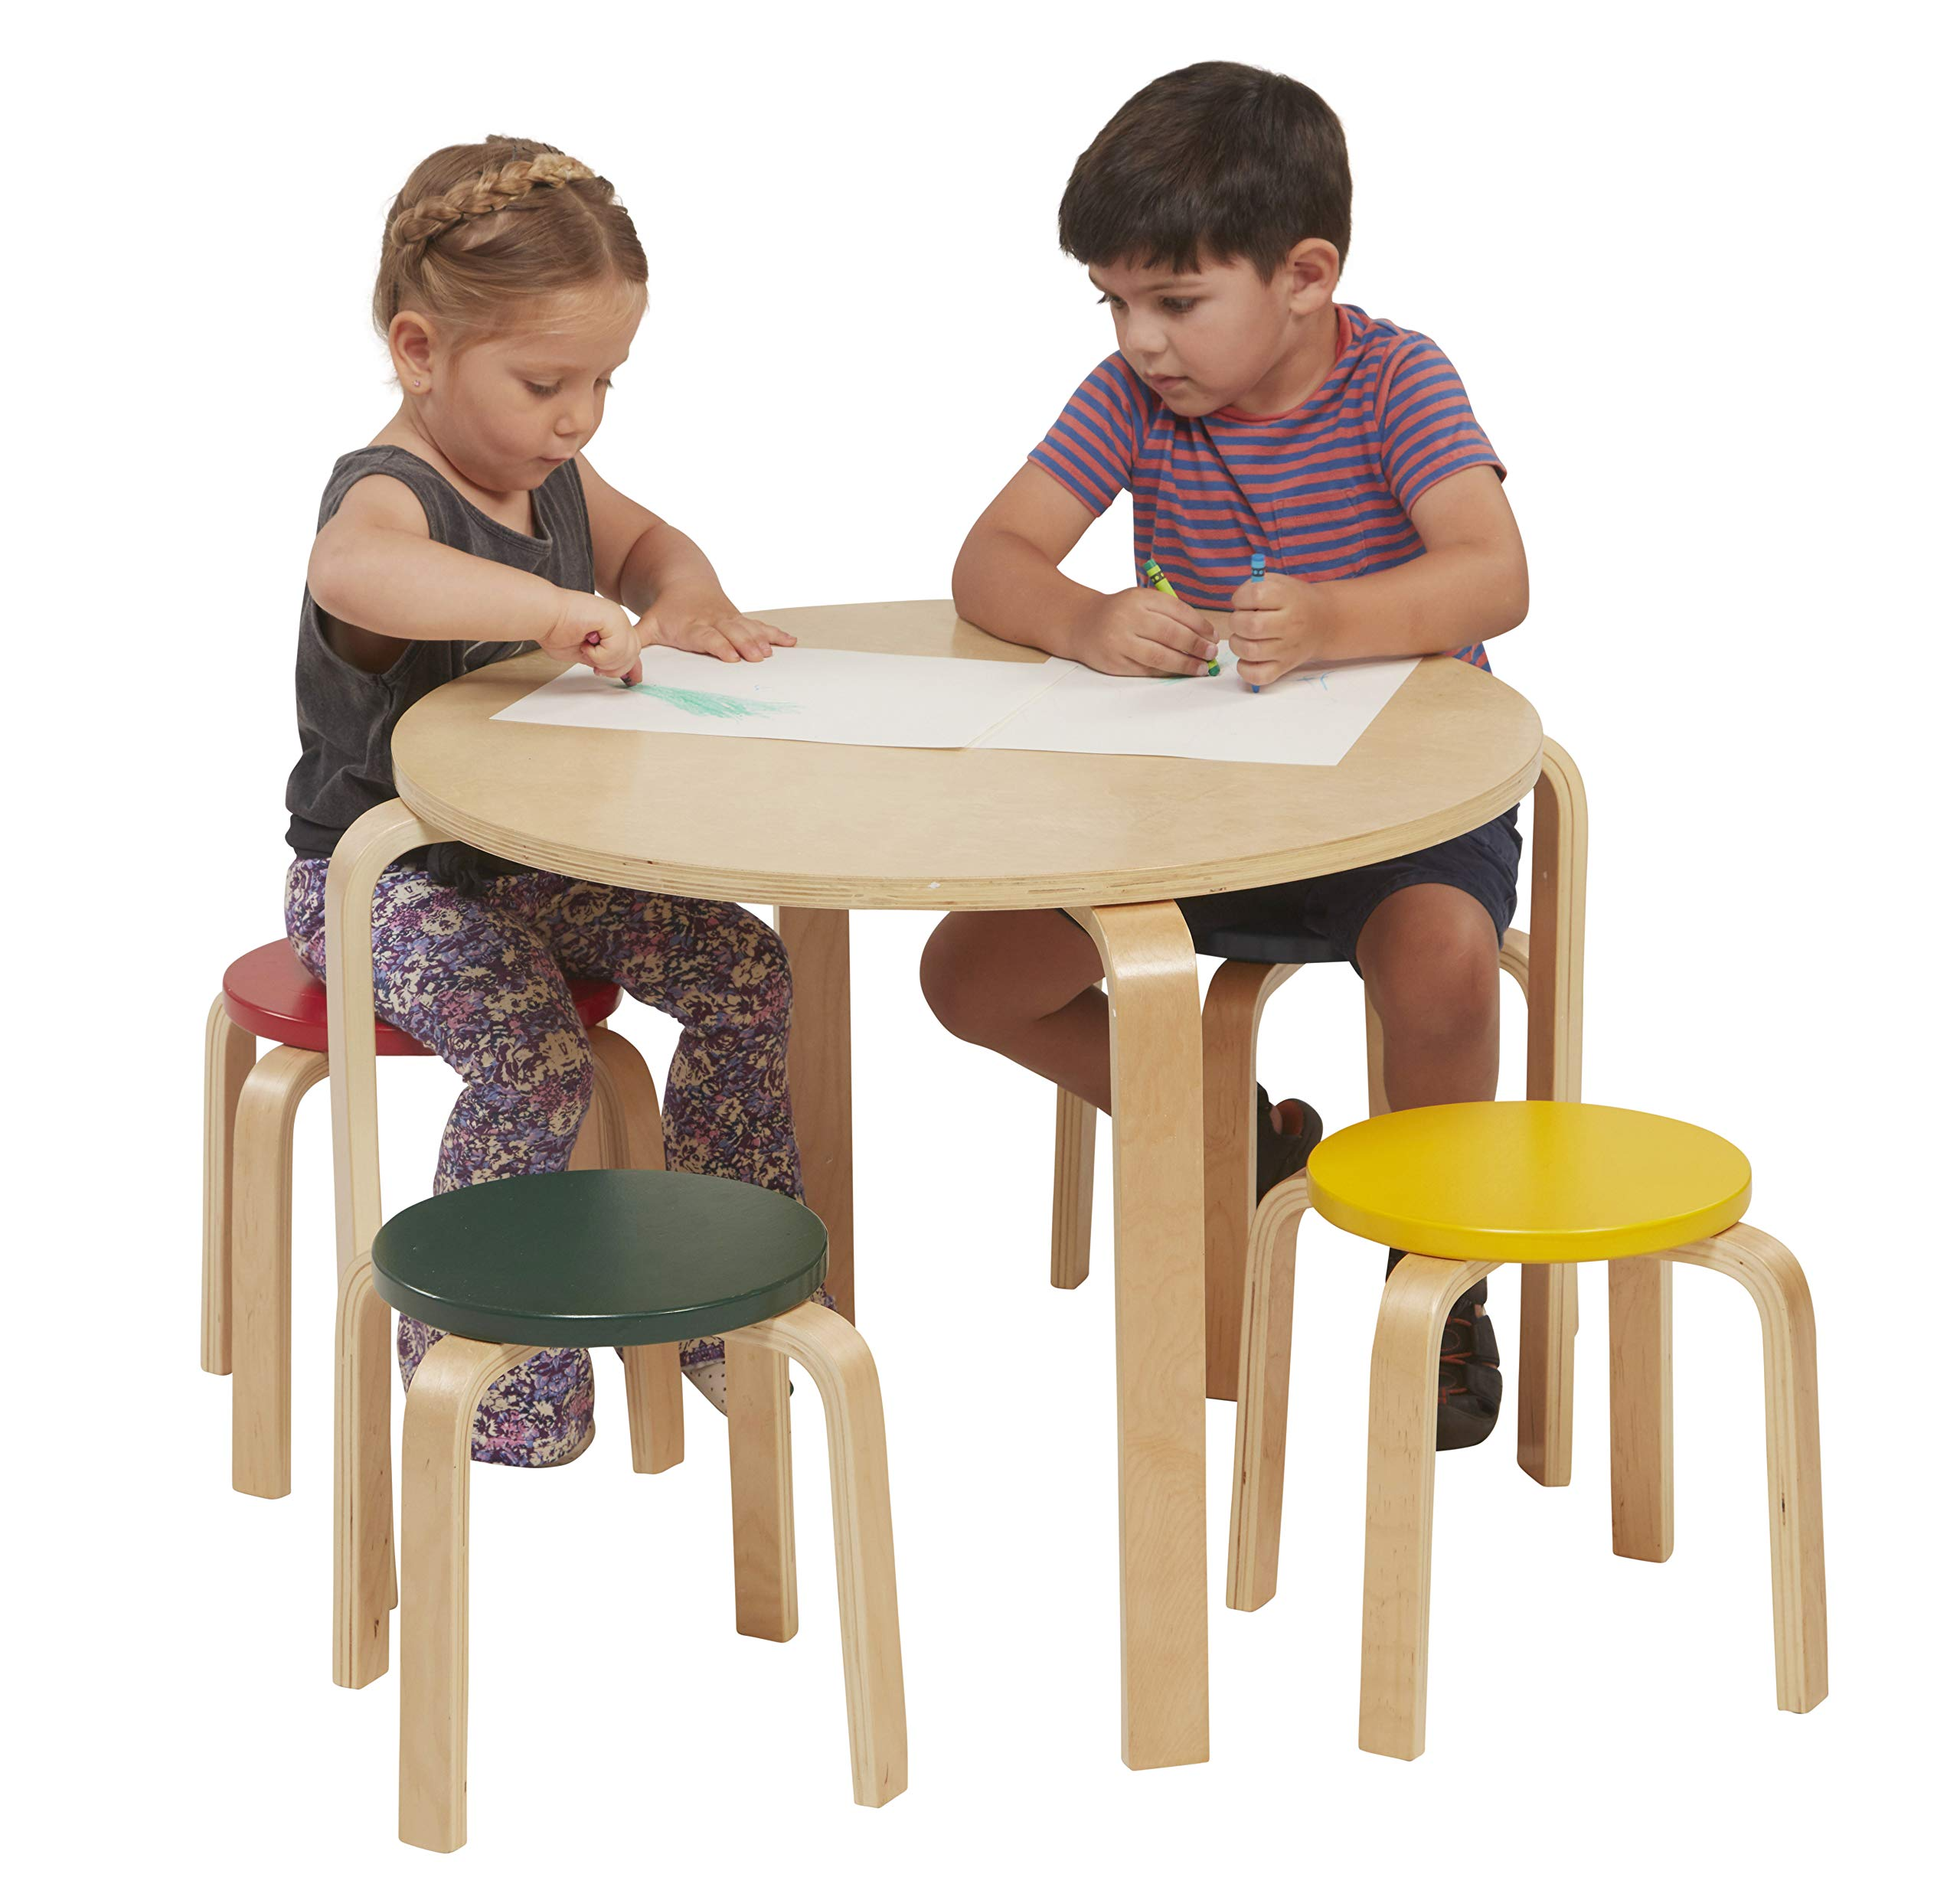 Miraculous Details About Ecr4Kids Bentwood Table And Stool Set For Kids Assorted Beatyapartments Chair Design Images Beatyapartmentscom